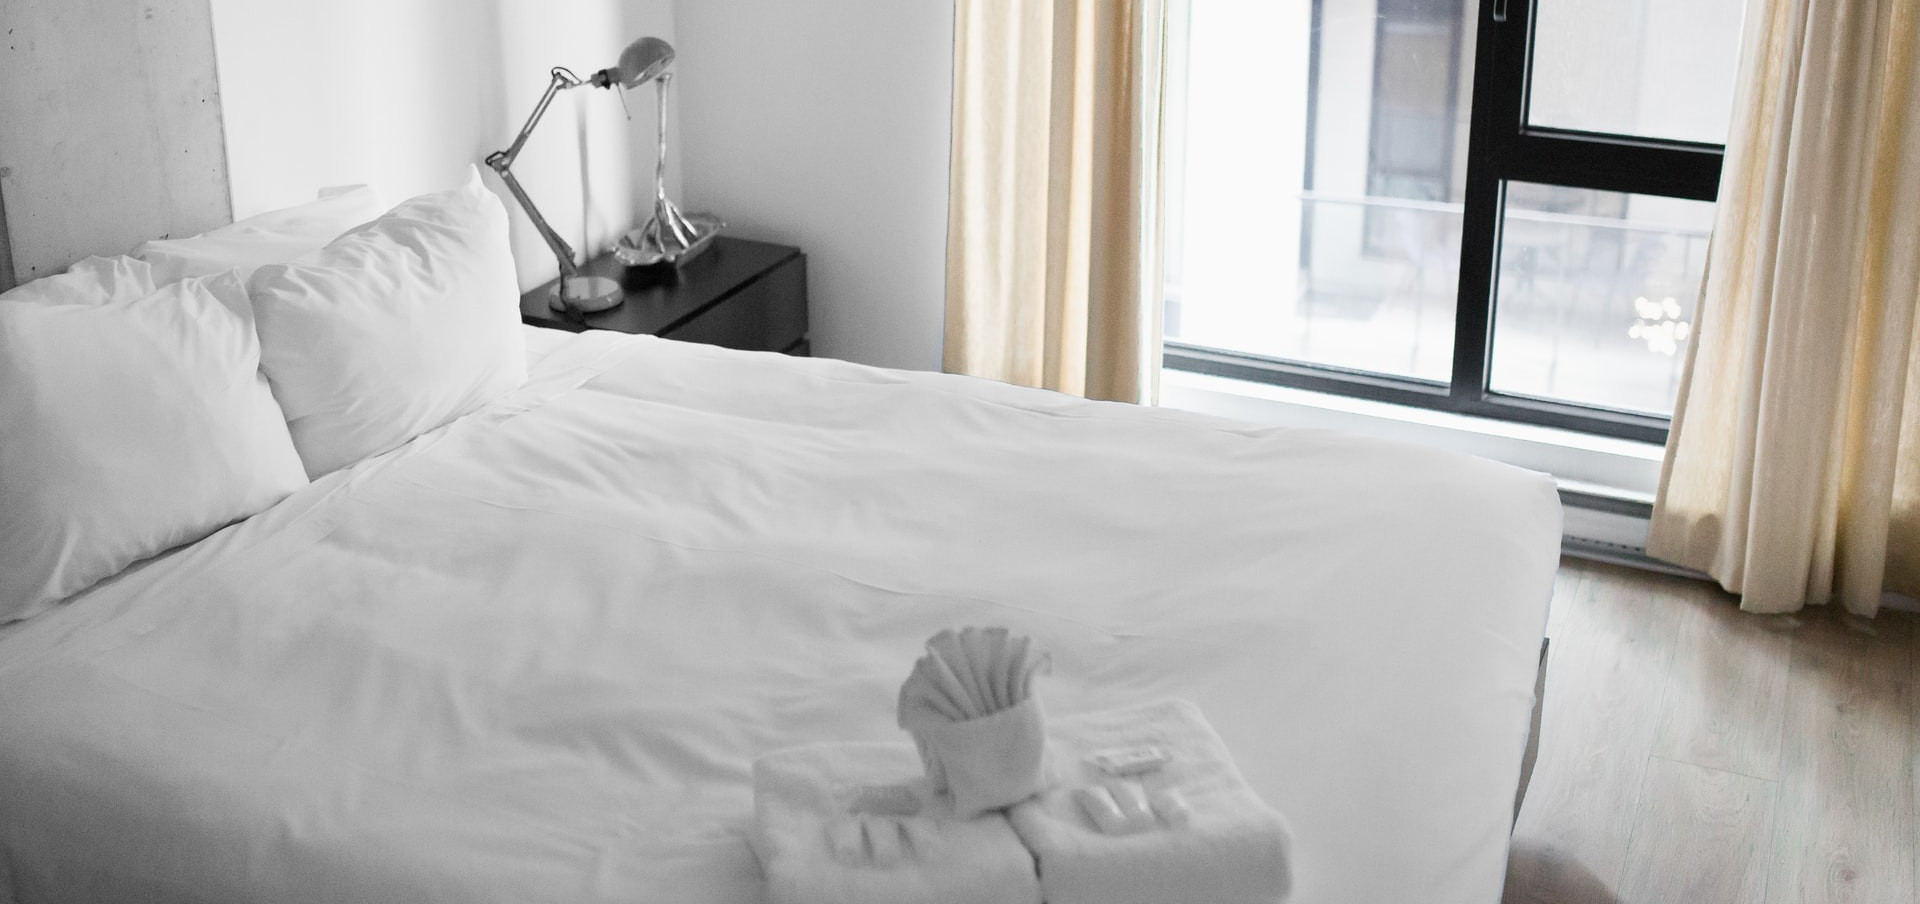 bedding what is the difference between a duvet and a comforter?